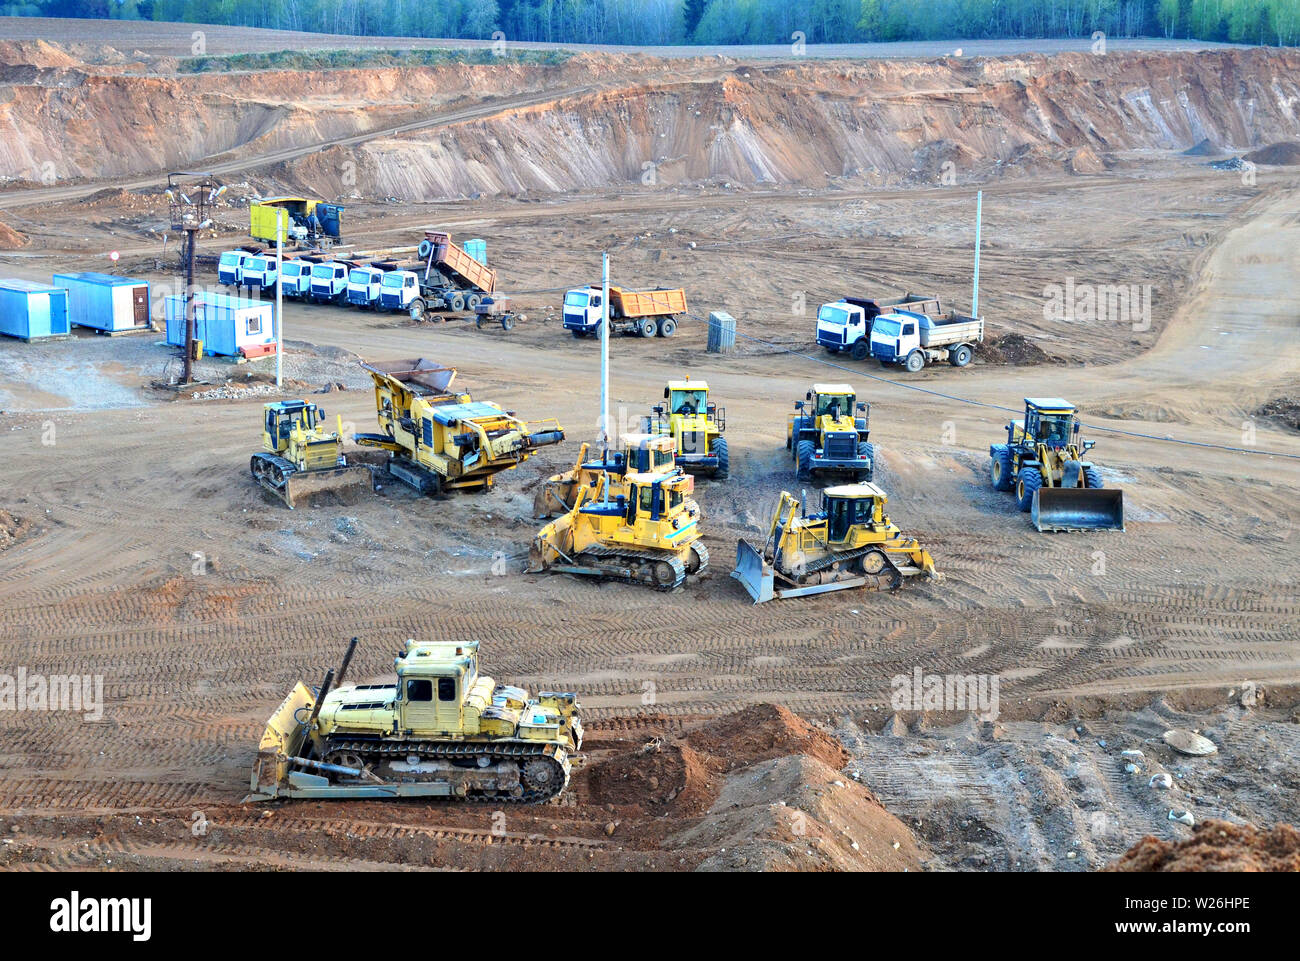 A lot of heavy construction equipment in the mining quarry. Parking with bulldozers, tractors, front loaders, excavators and dump trucks, top view - I - Stock Image